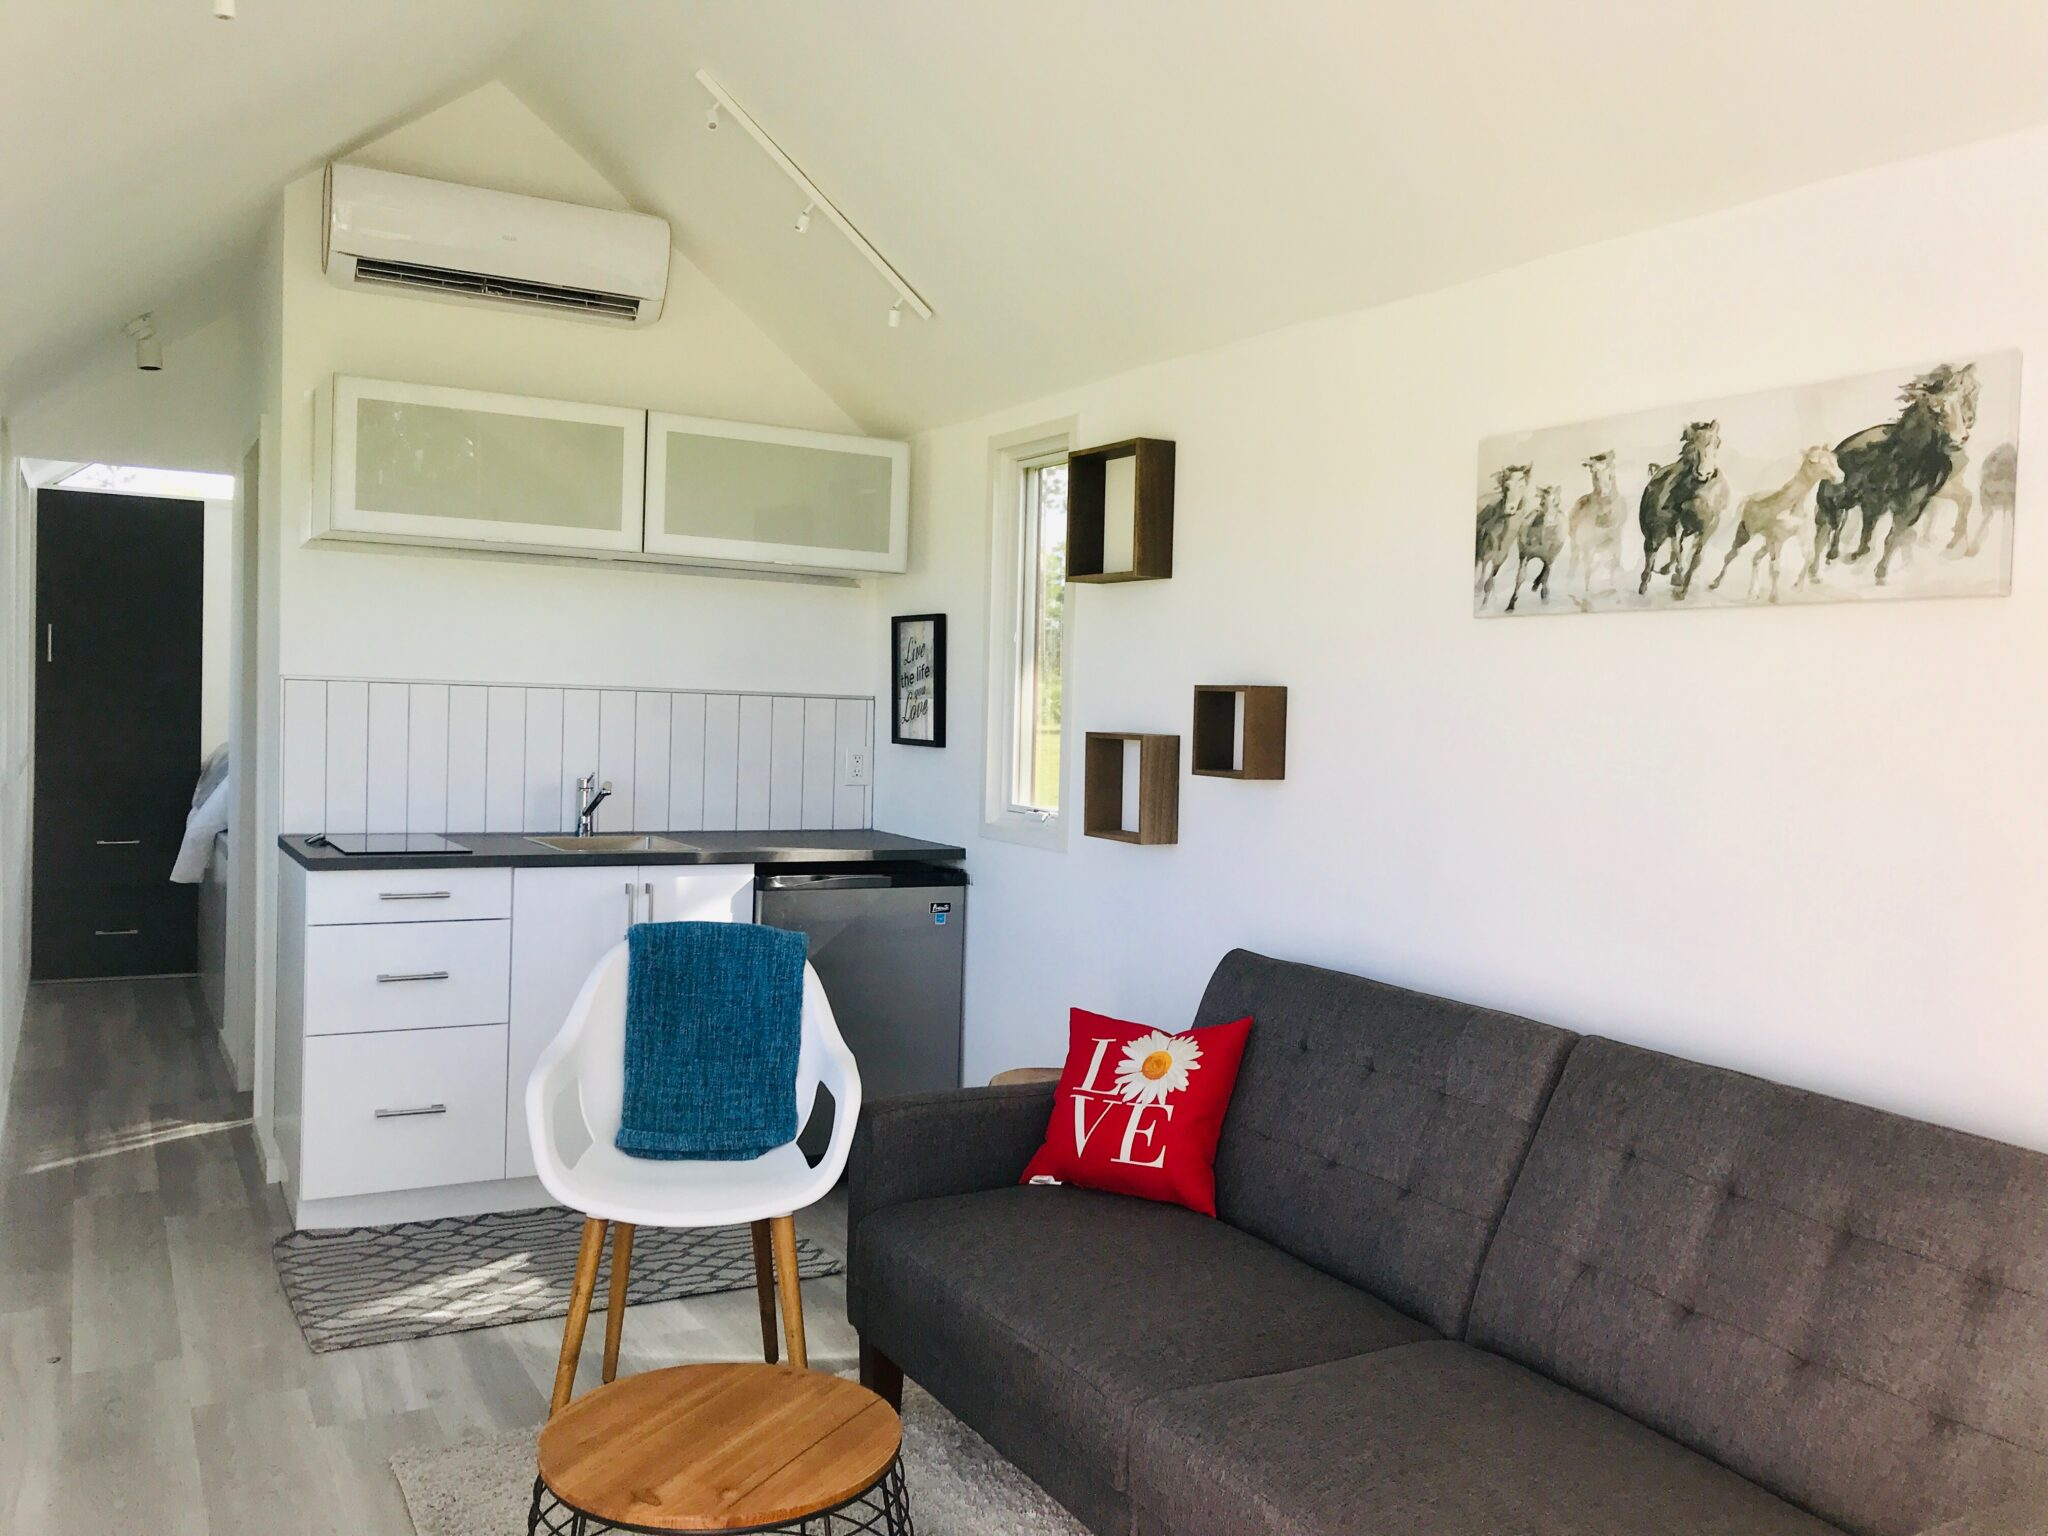 Boxhaus Designs - Tiny home Builder in Florida